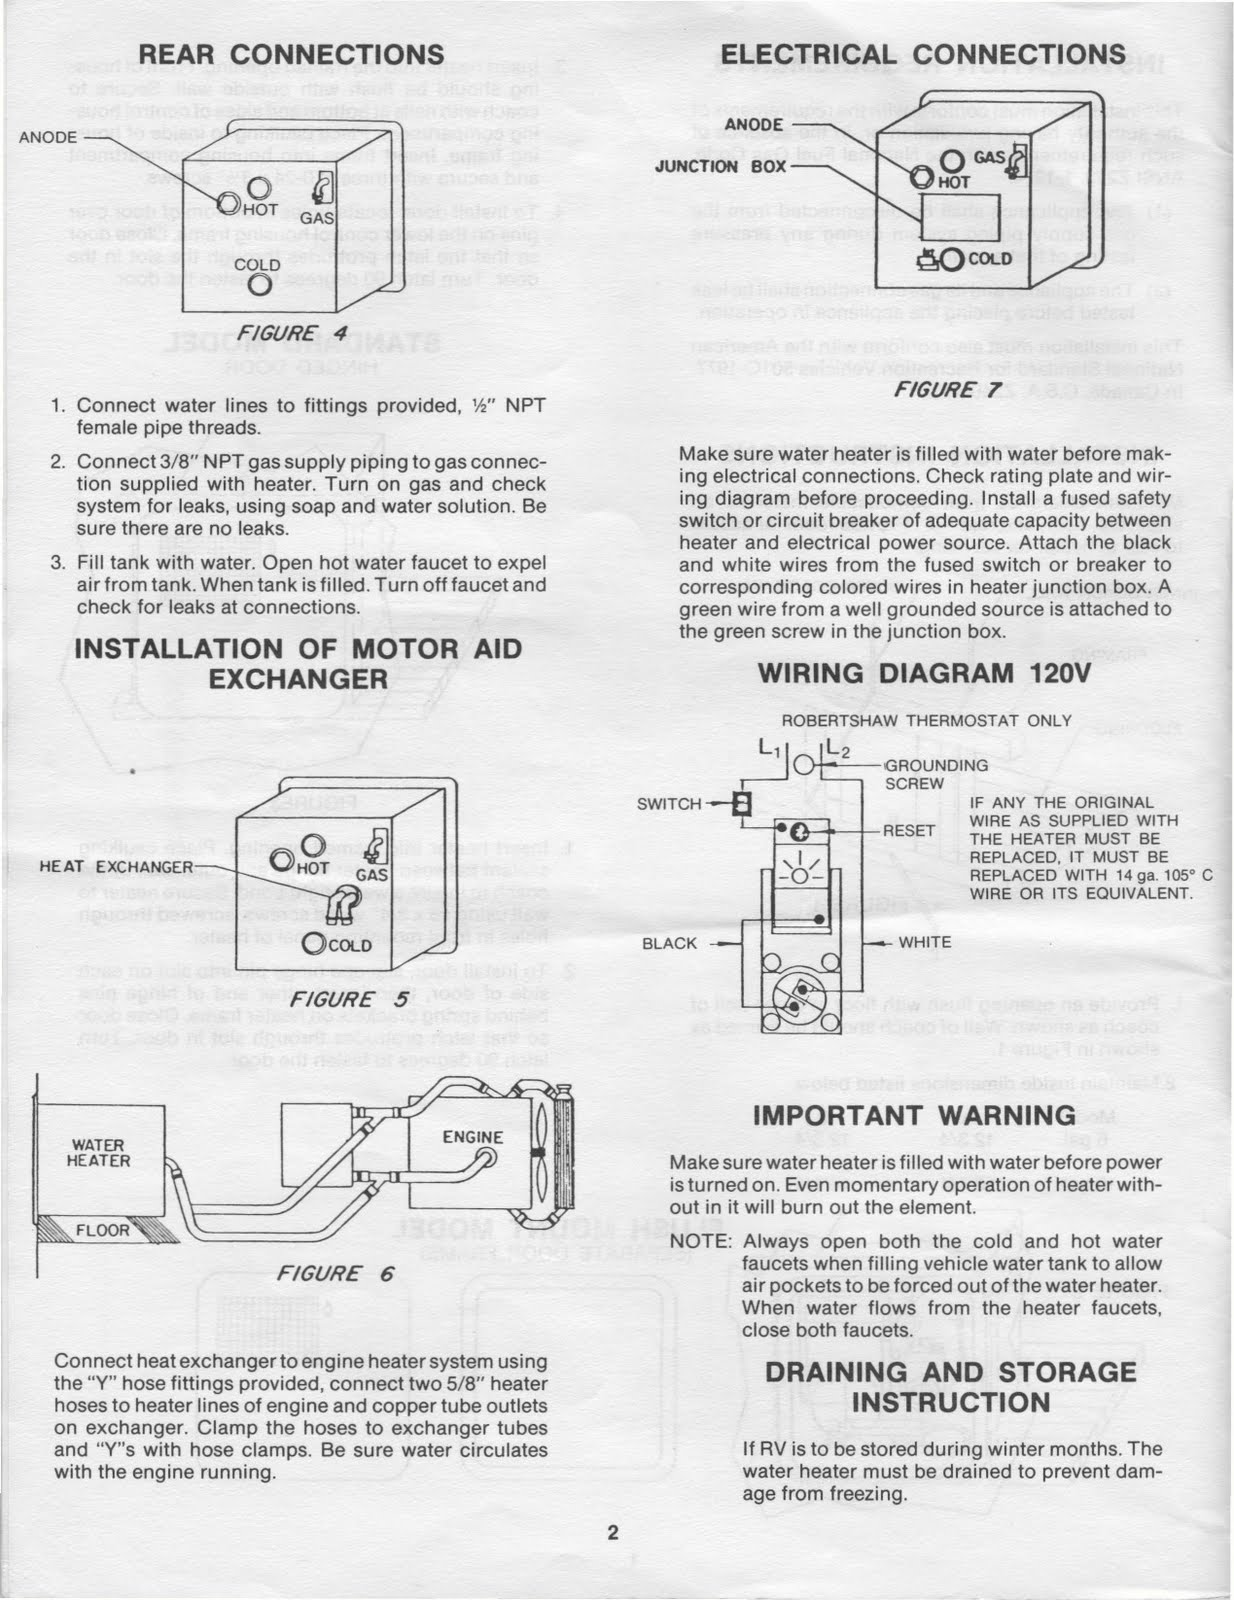 1983 Fleetwood Pace Arrow Owners Manuals Mor Flo Water Heater Starlite Trailer Wiring Diagram For A Installation And Service Manual 6500015